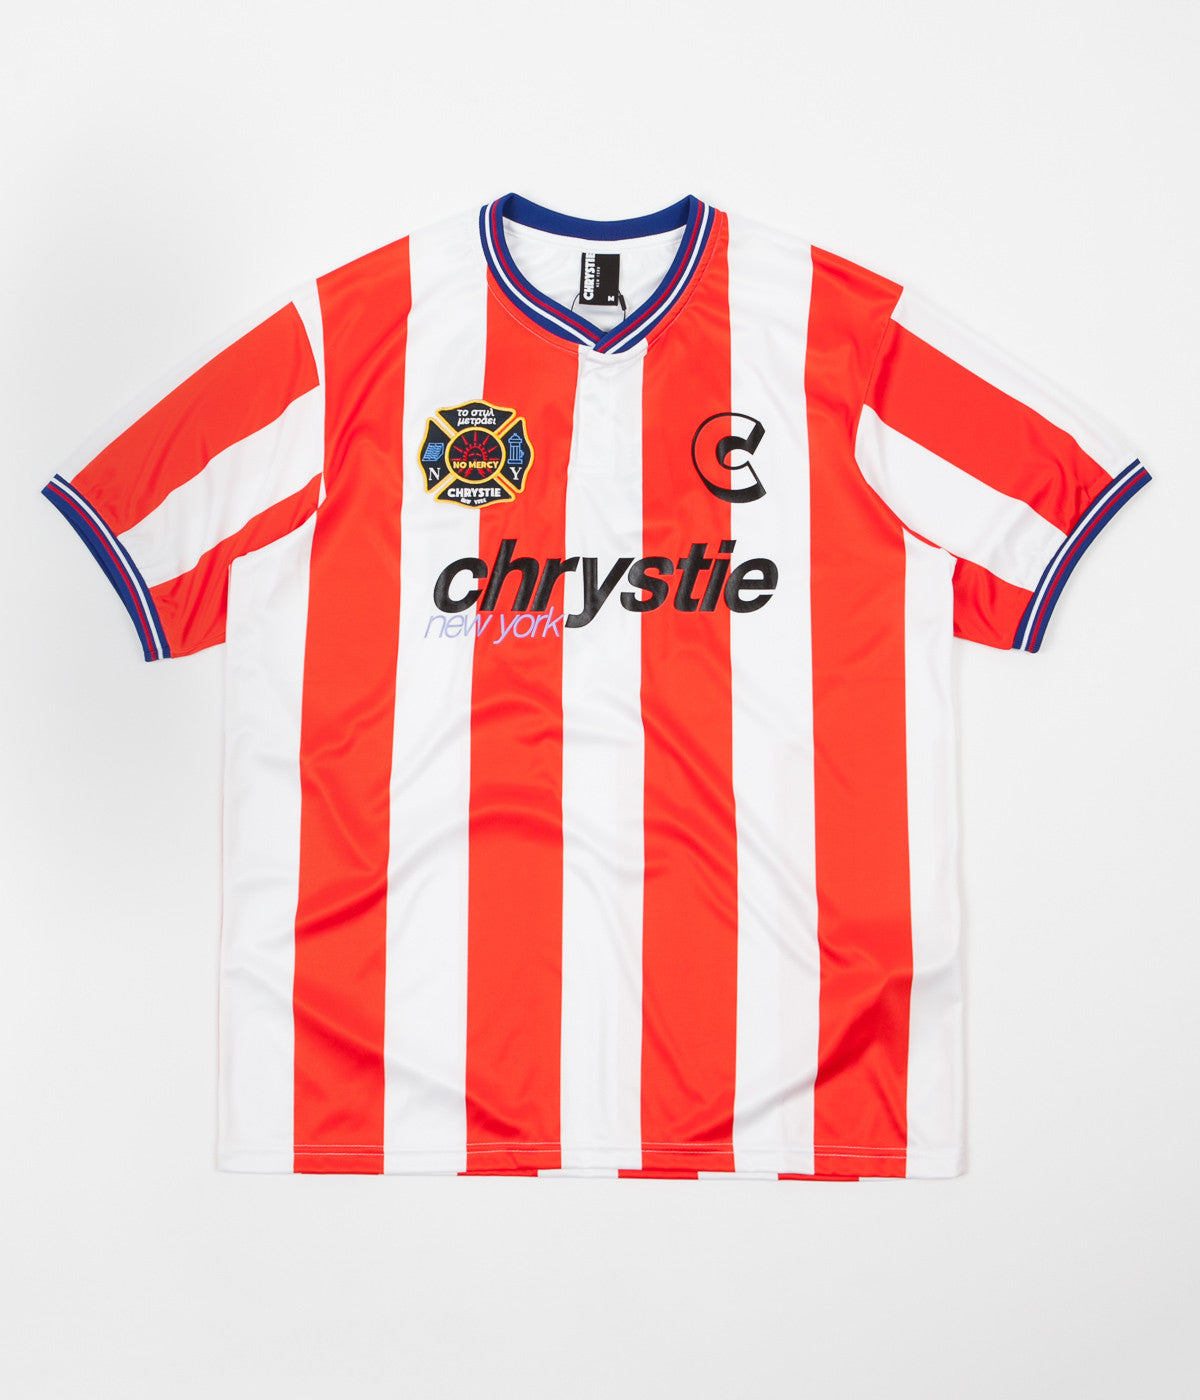 Chrystie NYC Team Chrystie Soccer Jersey - Red / White